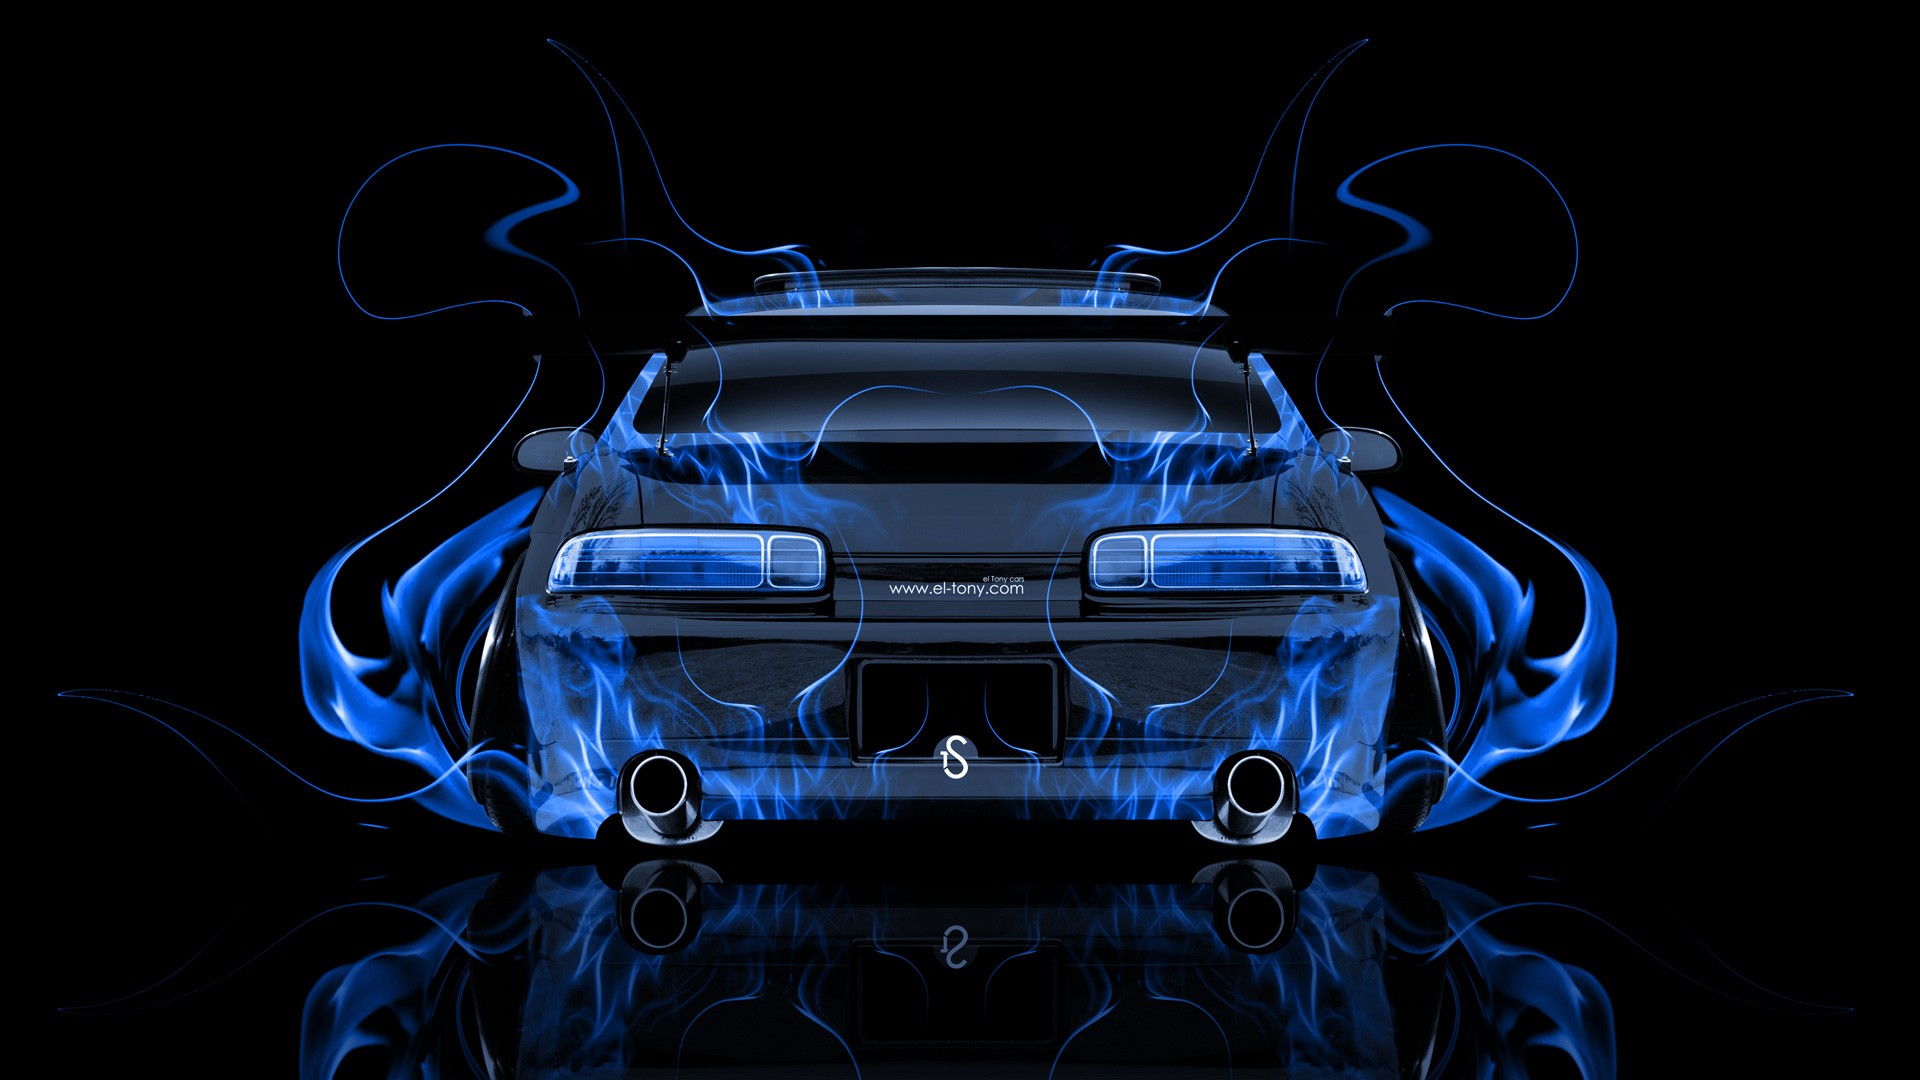 Lovely Wallpapers Toyota Soarer Jdm Tuning Back Fire Abstract Car 2014